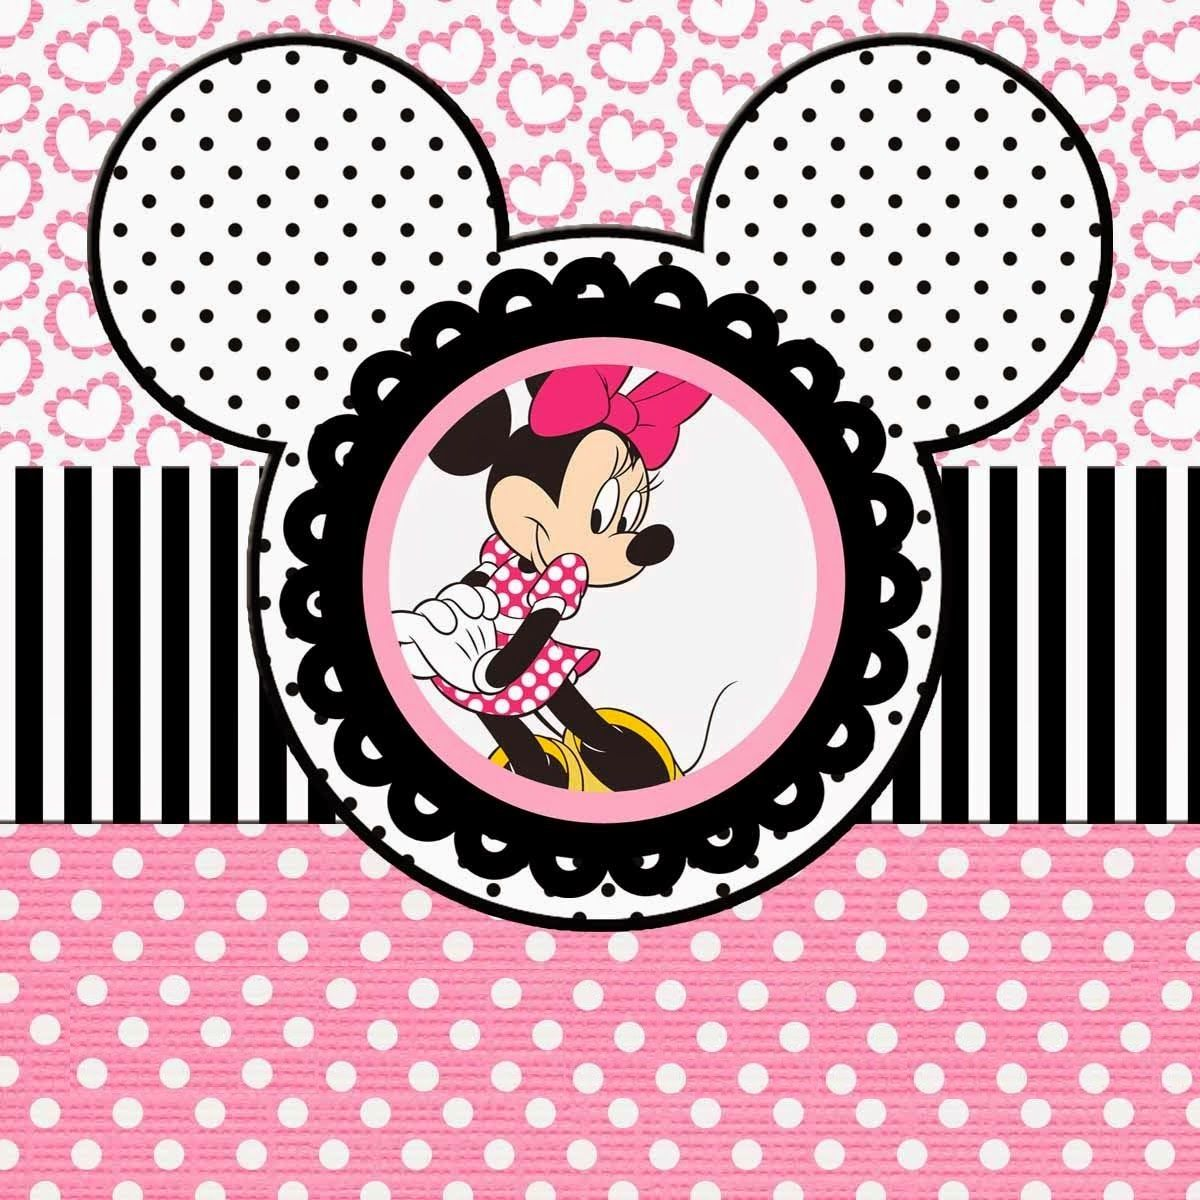 Funny Pink Minnie Mouse Free Printable Kit. | Oh My Fiesta ... - photo #43